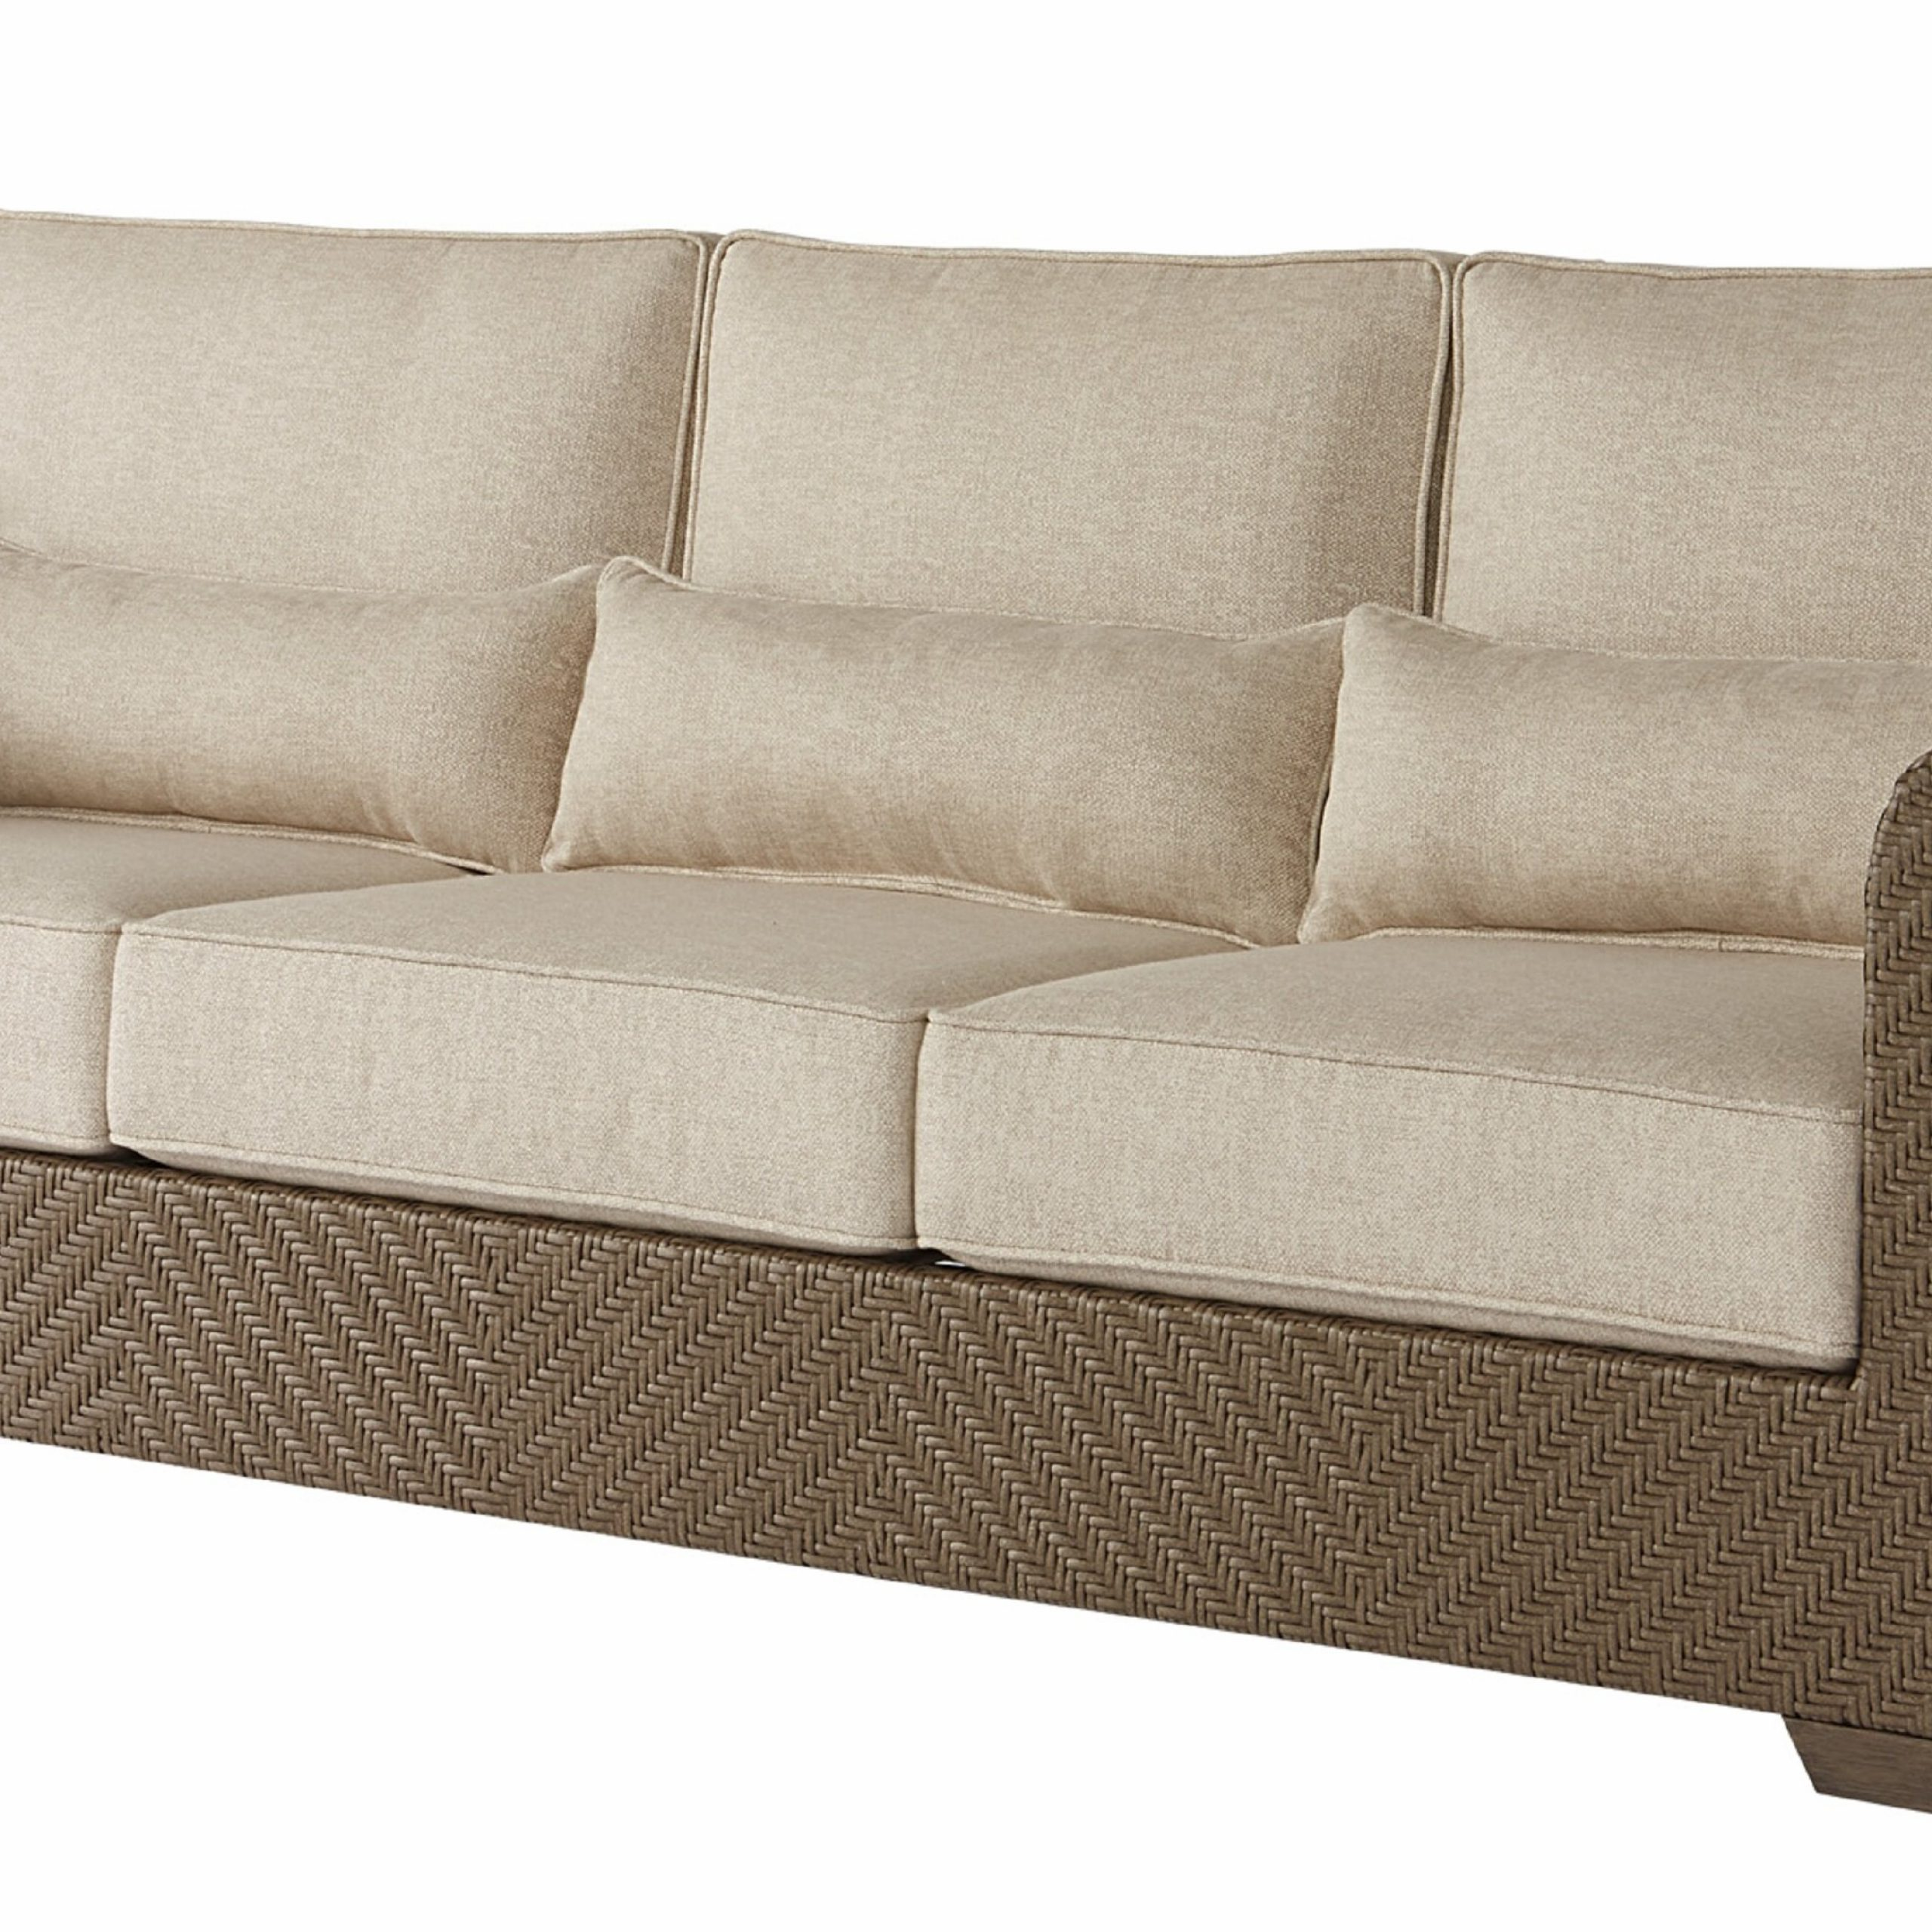 Astrid Wicker Patio Sofa With Cushions For Well Known Carlisle Patio Sofas With Cushions (Gallery 21 of 25)